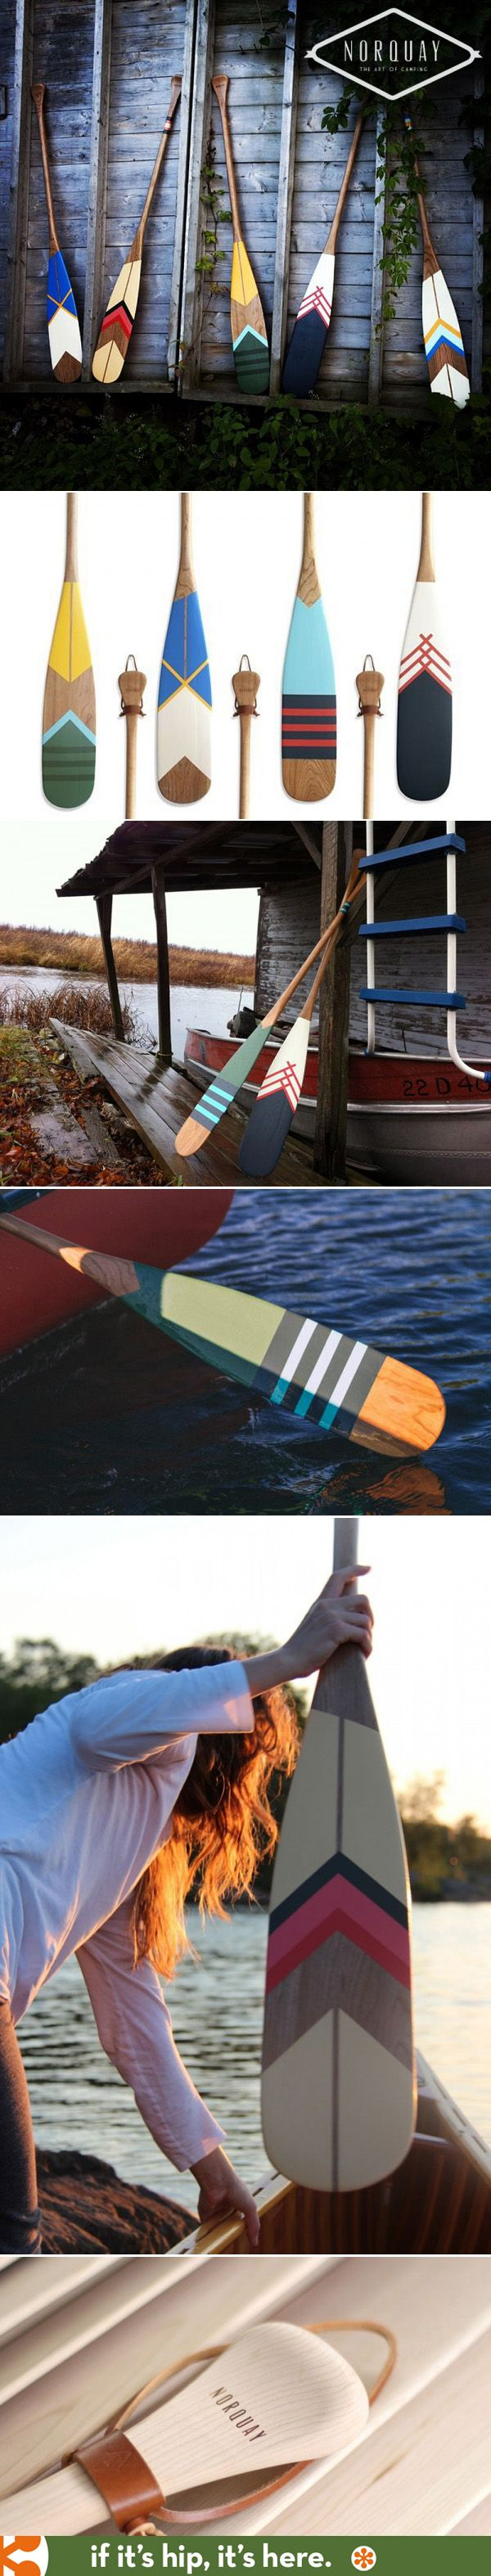 Hand-painted Artisan Canoe Paddles from Norquay Co. are both decorative and functional.